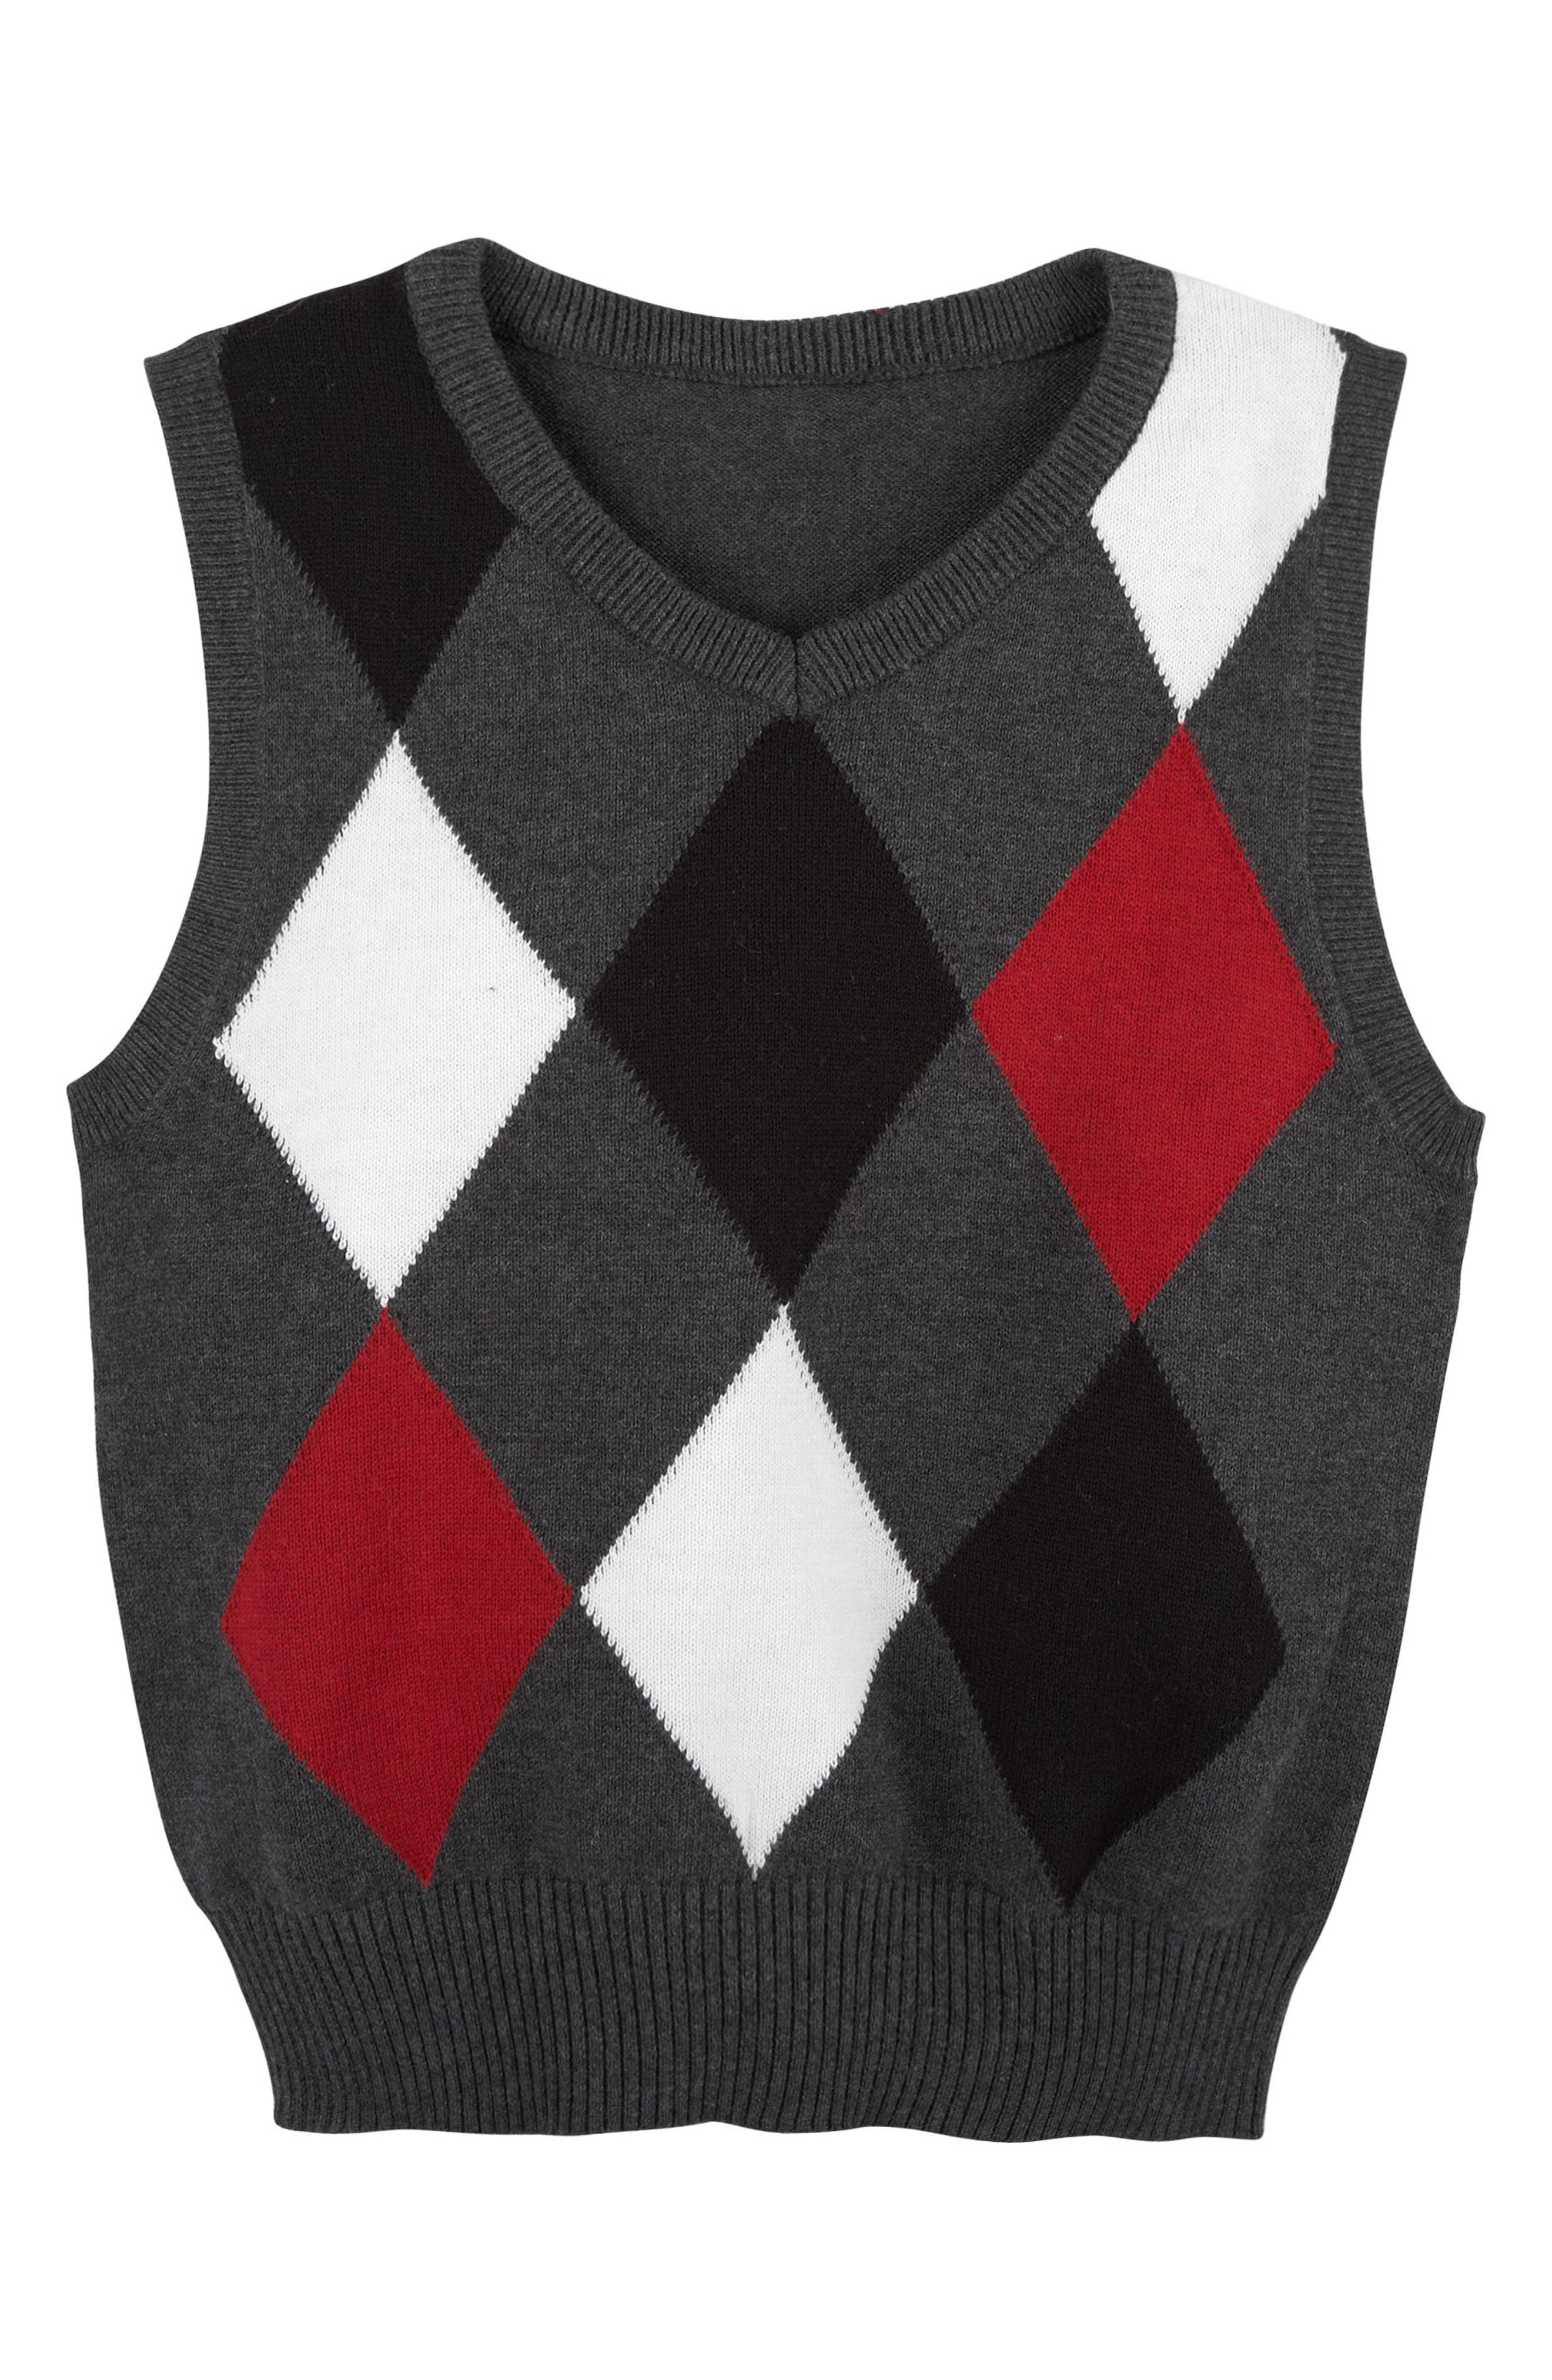 Main Image - Andy & Evan Argyle Sweater Vest (Baby Boys)